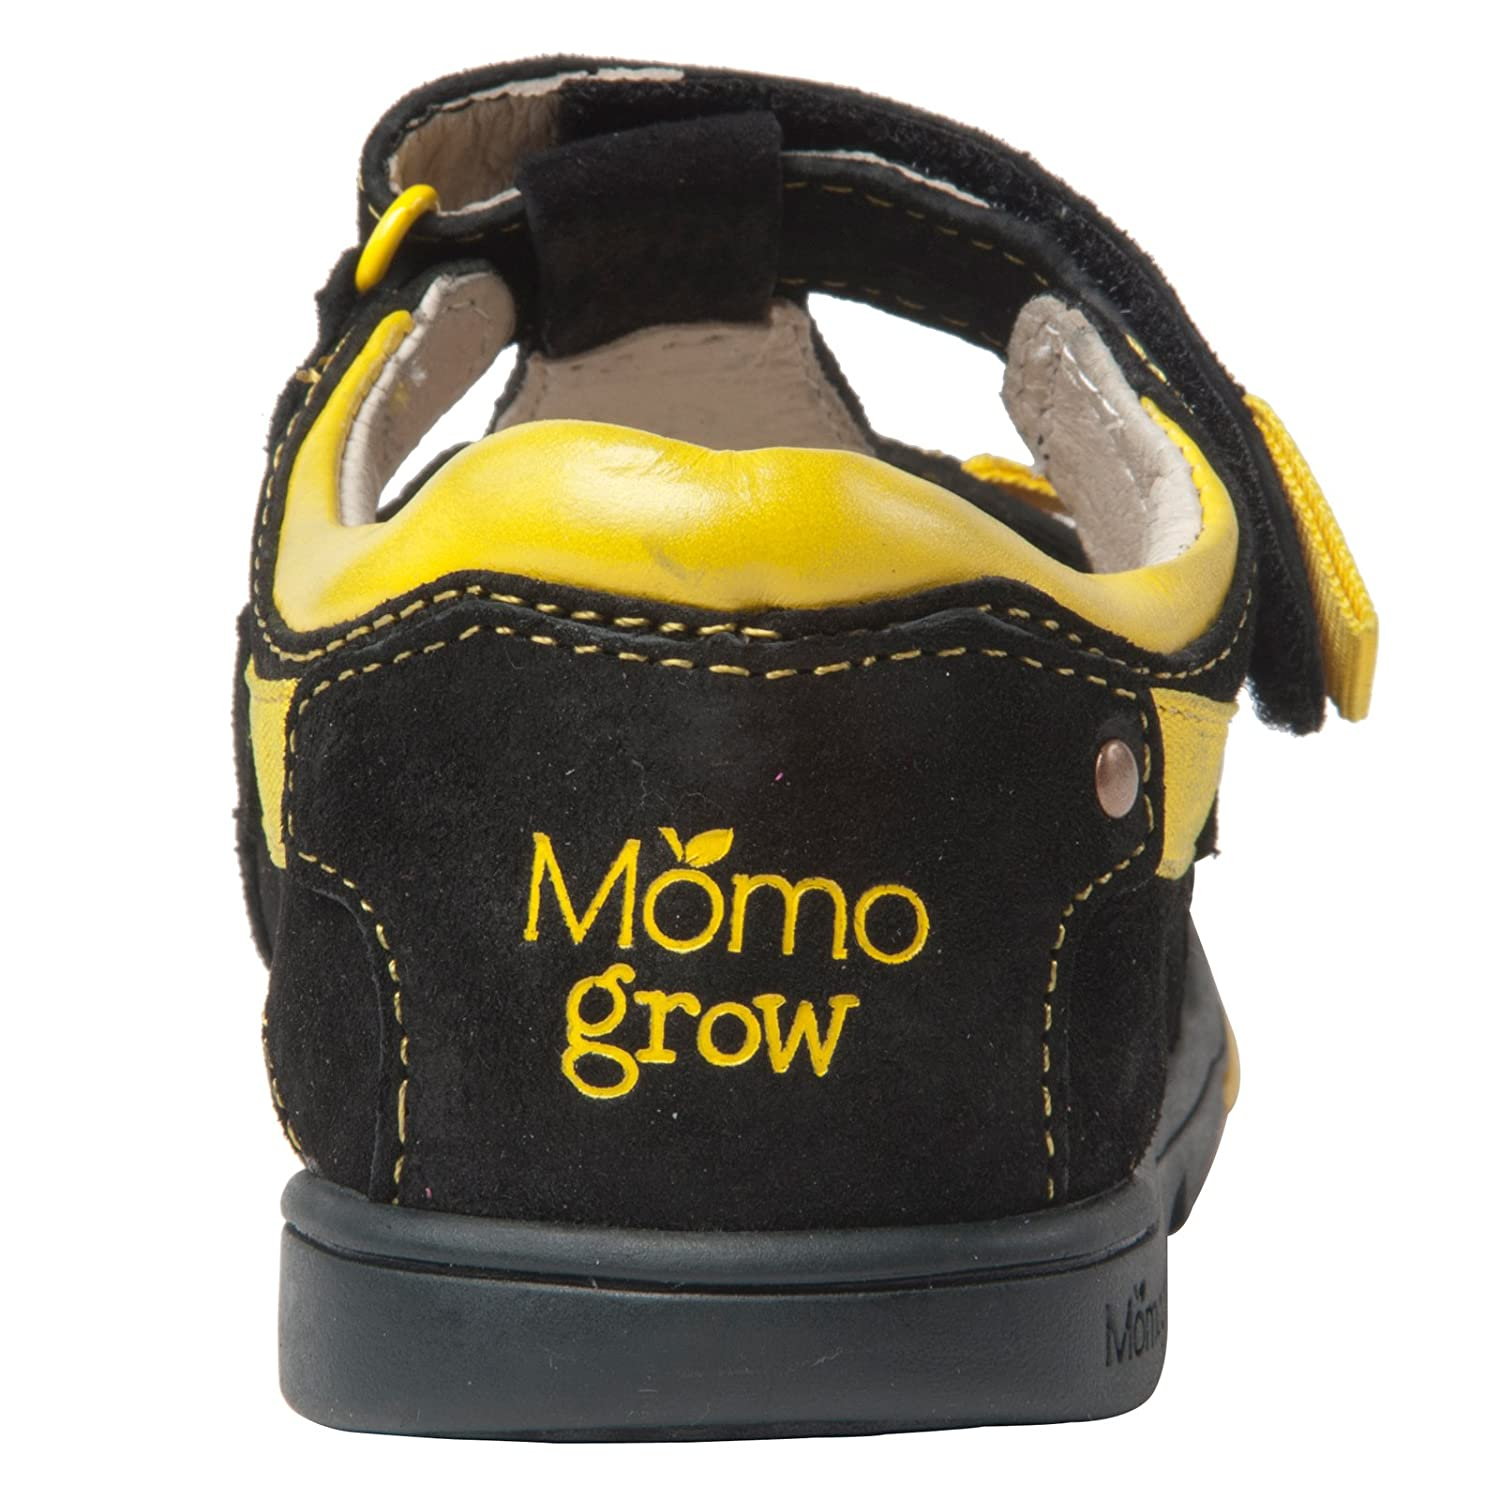 Momo Grow Boys Double-Strap Leather Sandal Shoes